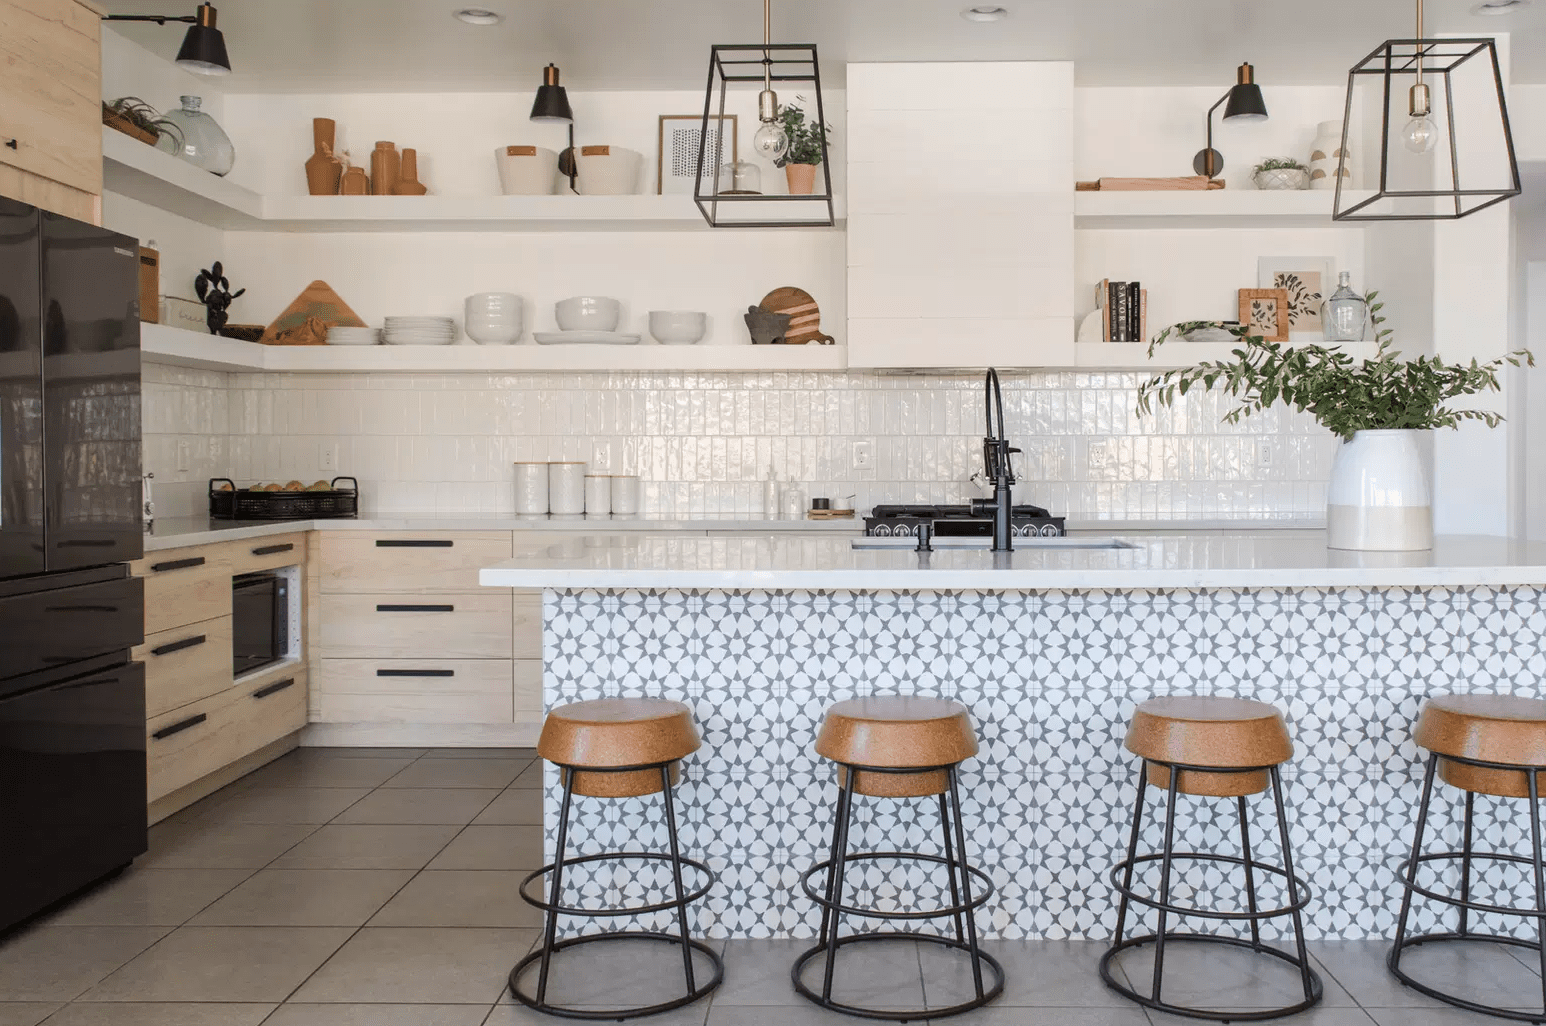 A kitchen with an island that's been covered with printed tiles